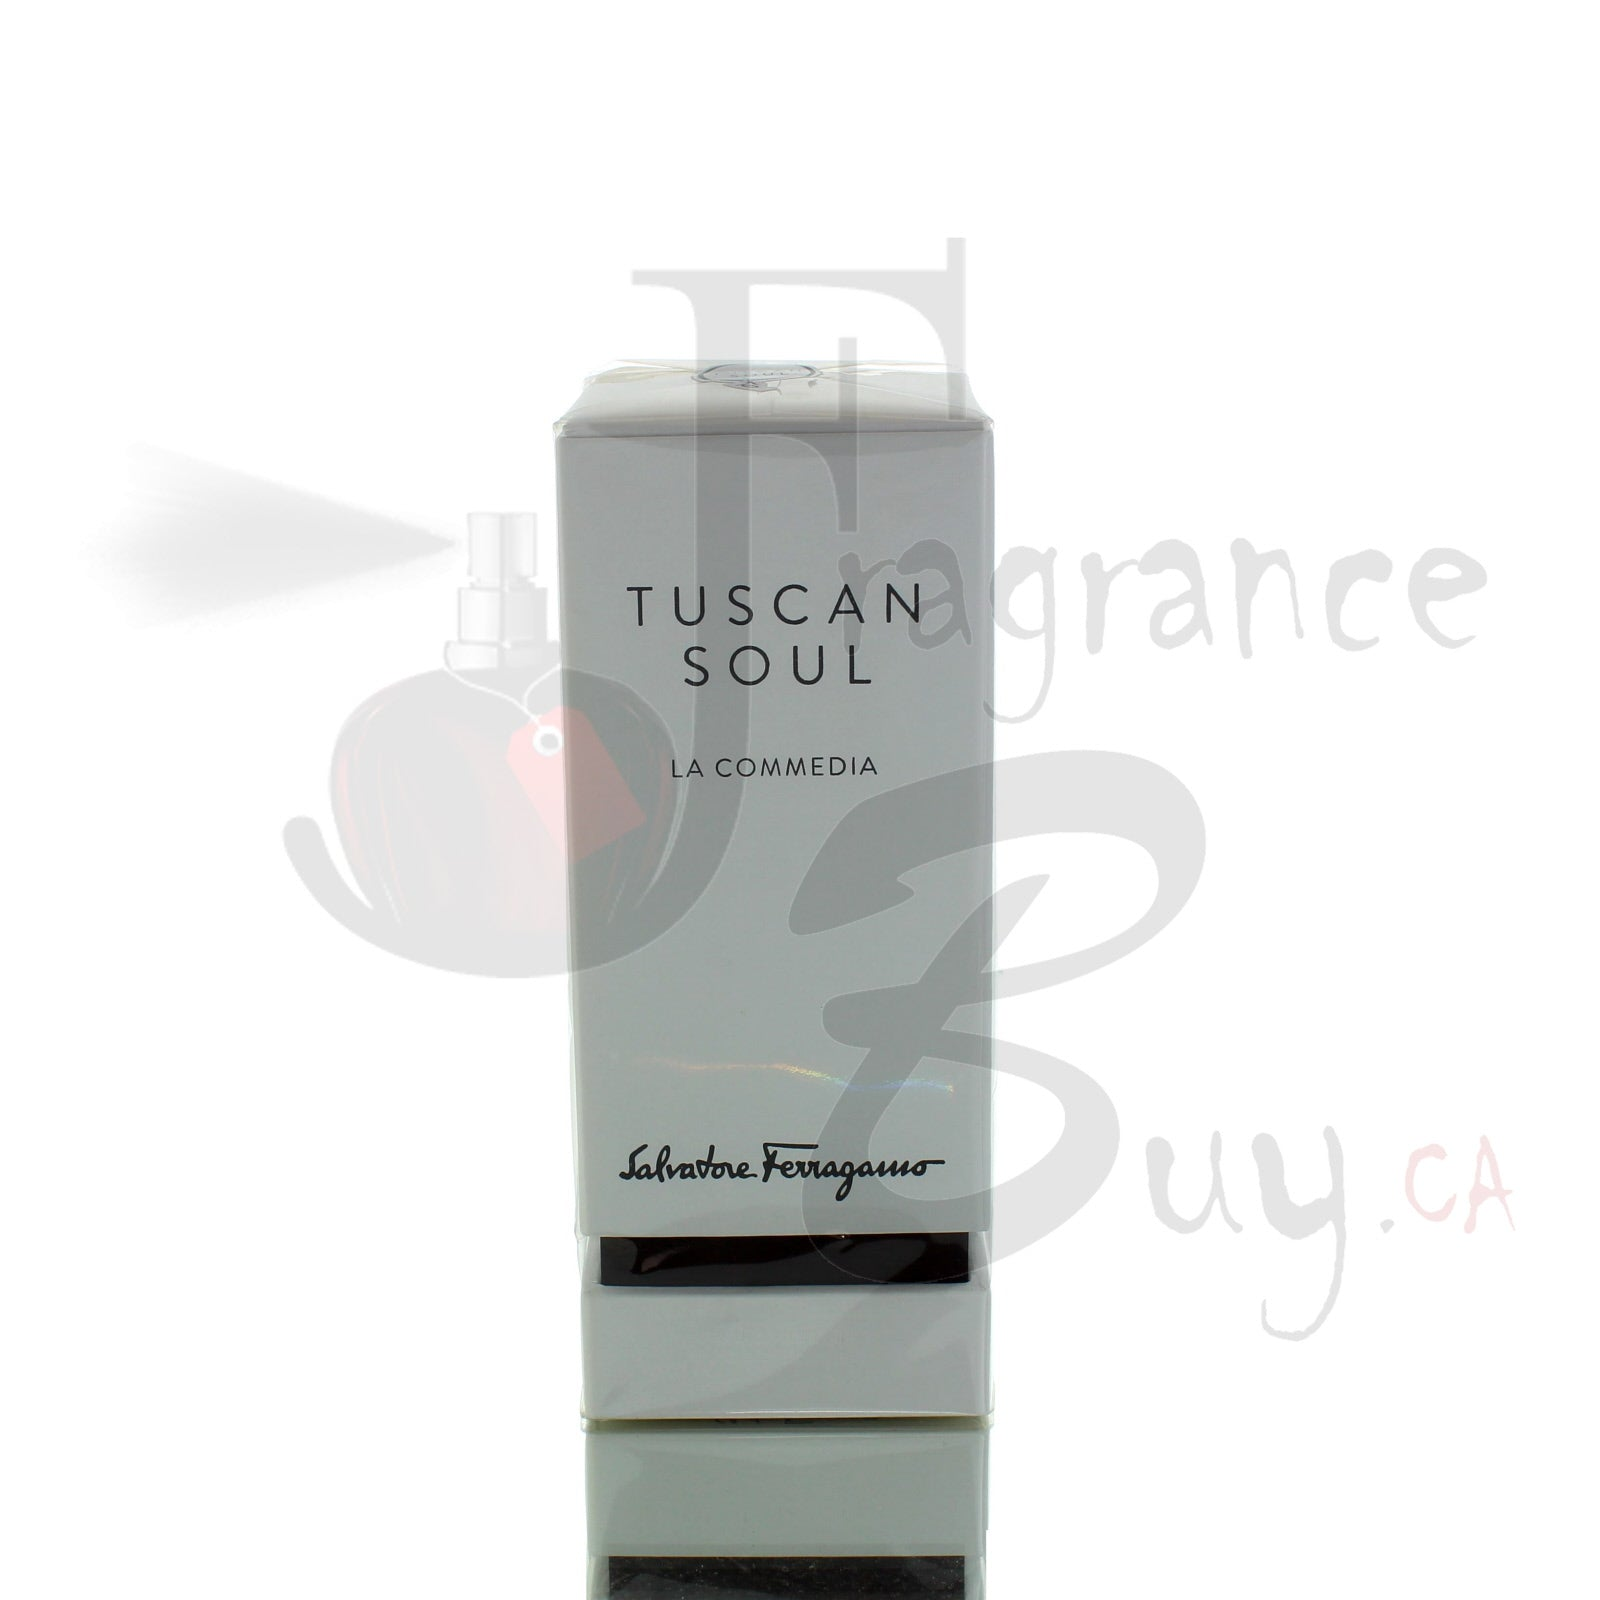 Salvatore Ferragamo Tuscan Scent La Commedia For Man/Woman